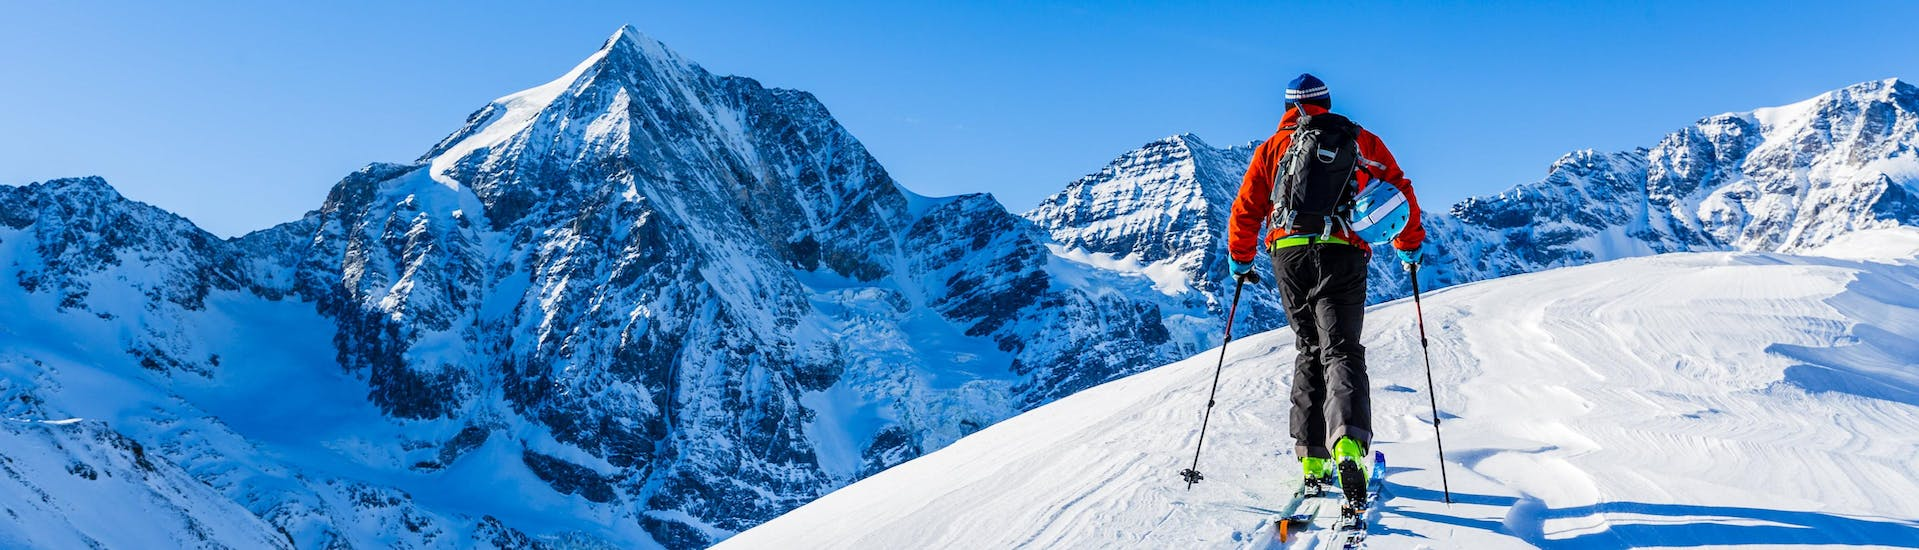 A man is exploring the snowy mountain landscape while ski touring in Czech Republic.